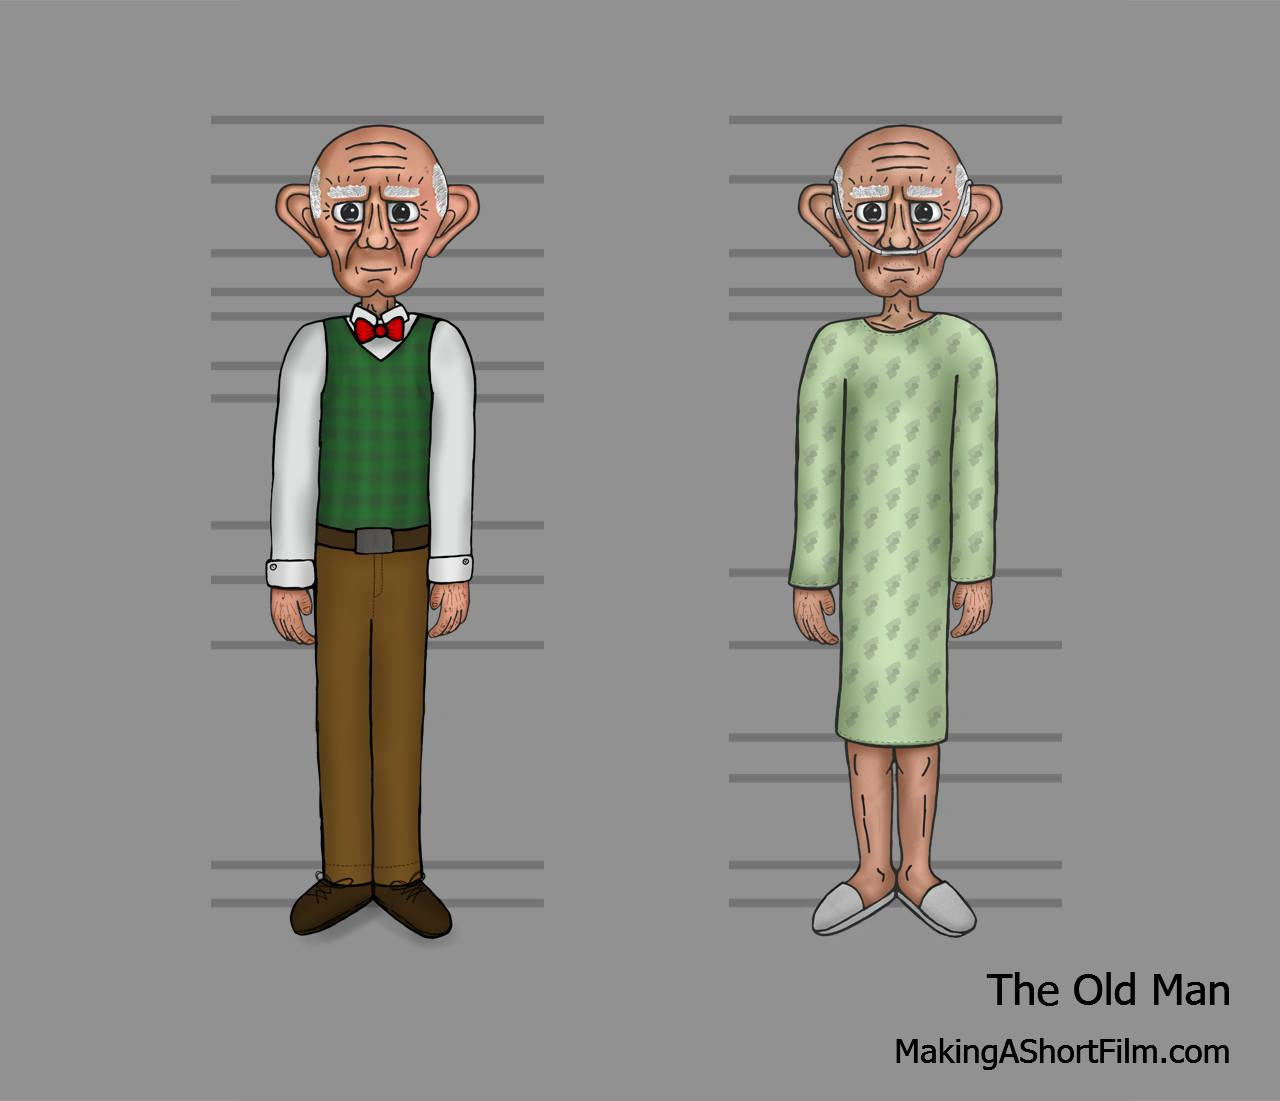 A comparison between the Old Man in the dream and in real life